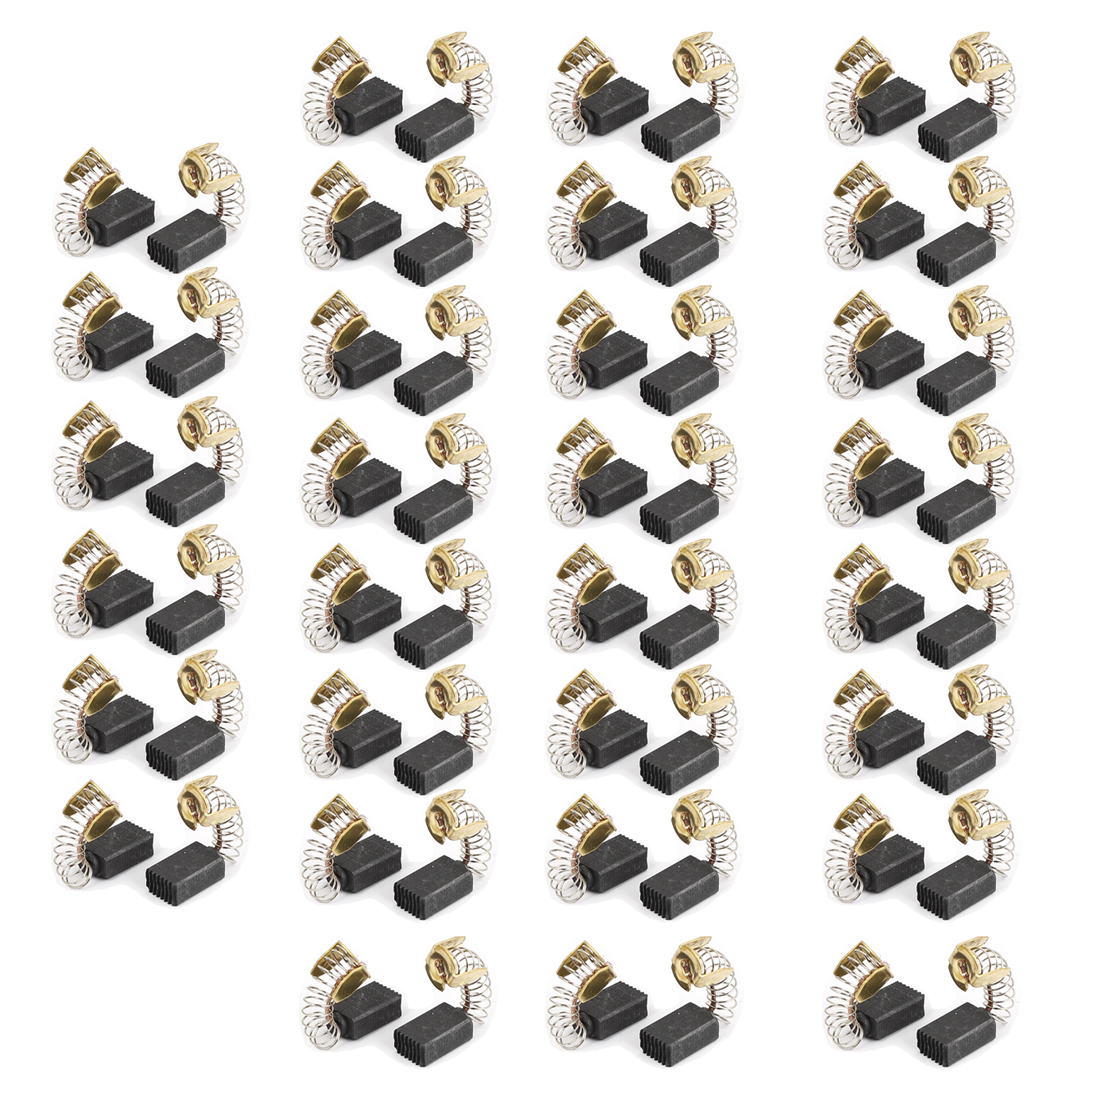 13mm x 8mm x 5mm Motor Carbon Brushes 60 Pcs for Generic Electric Motor